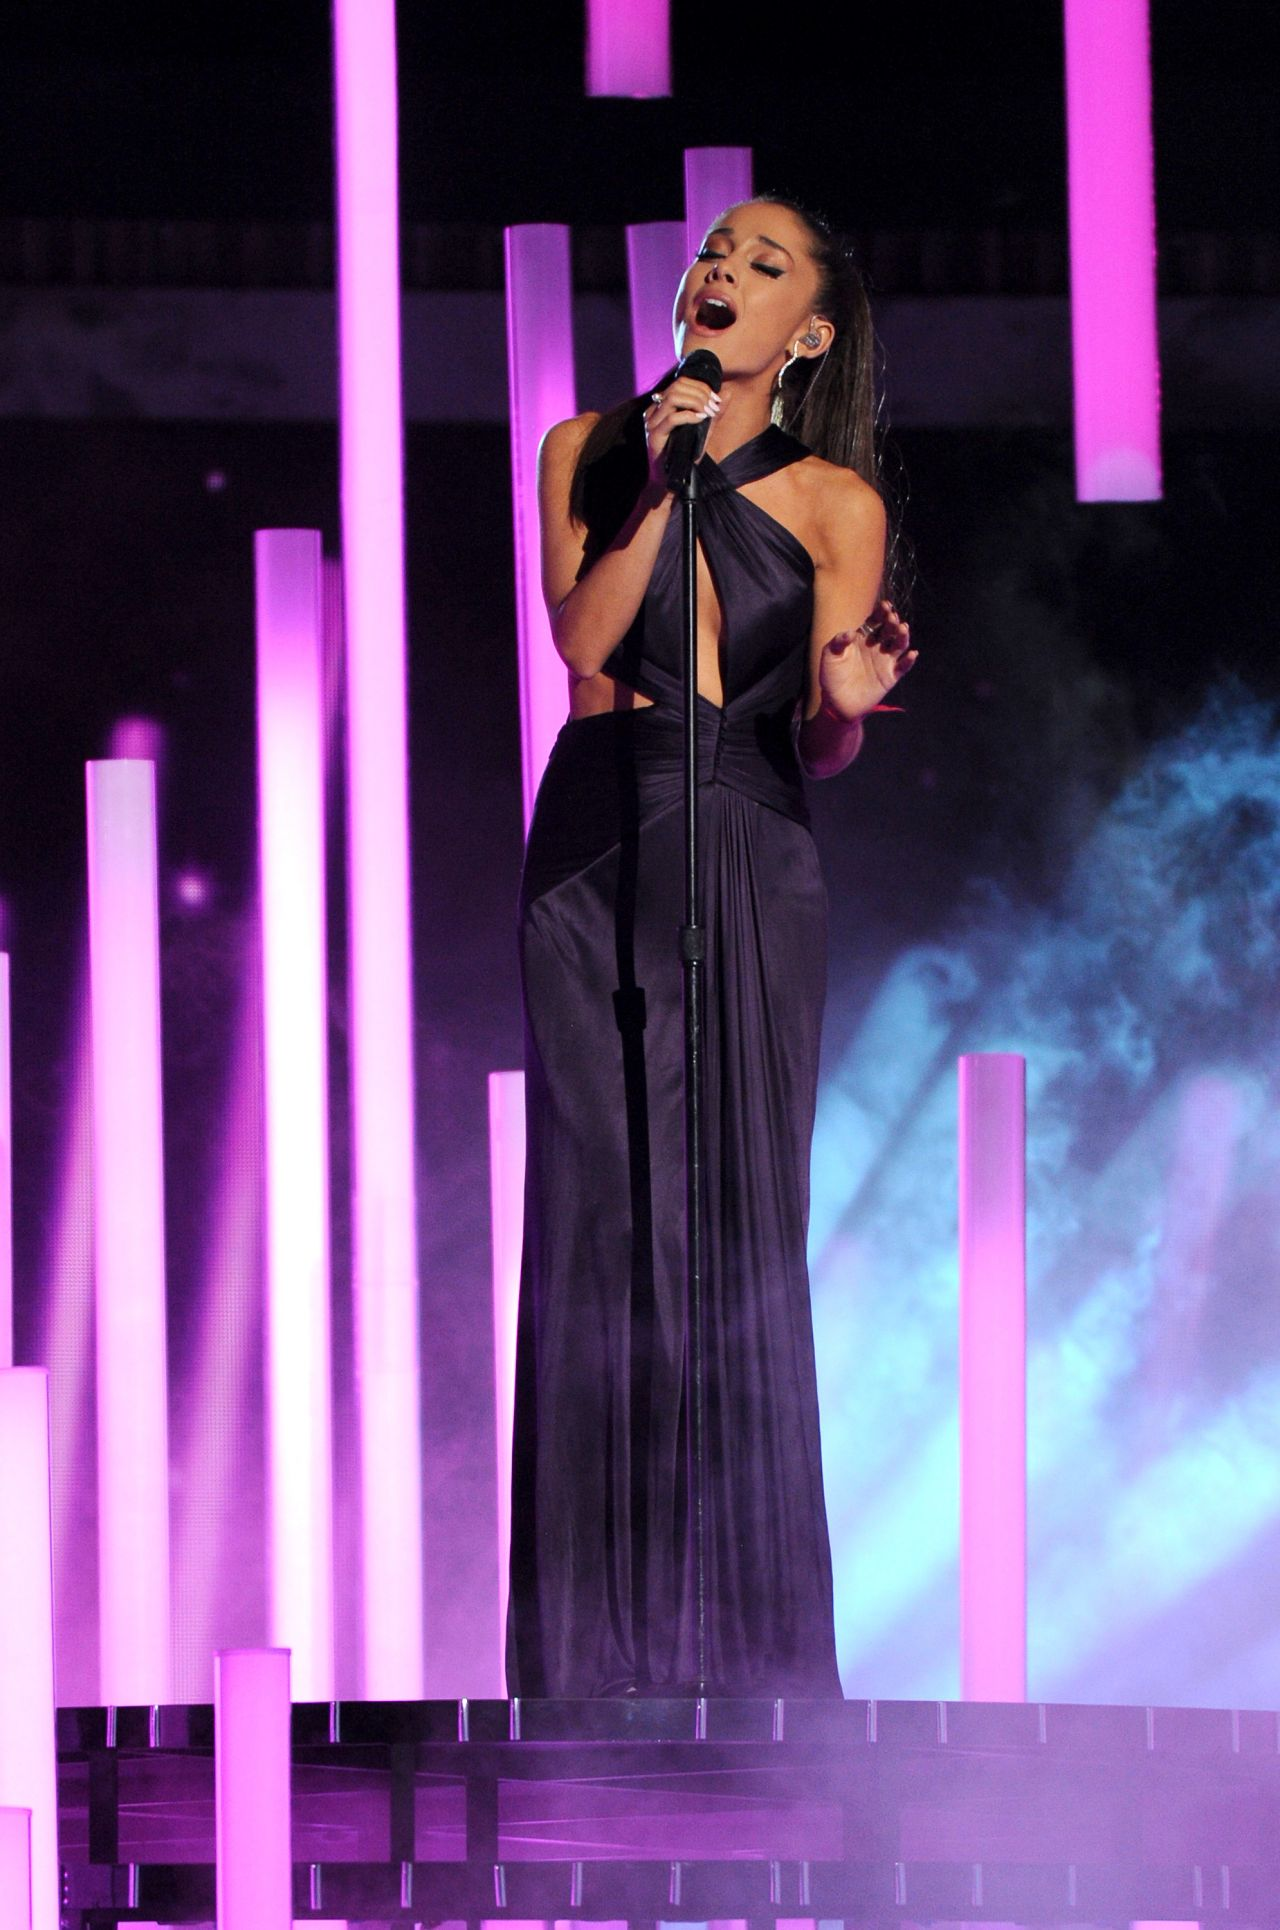 Ariana Grande Performs At 2015 Grammy Awards In Los Angeles